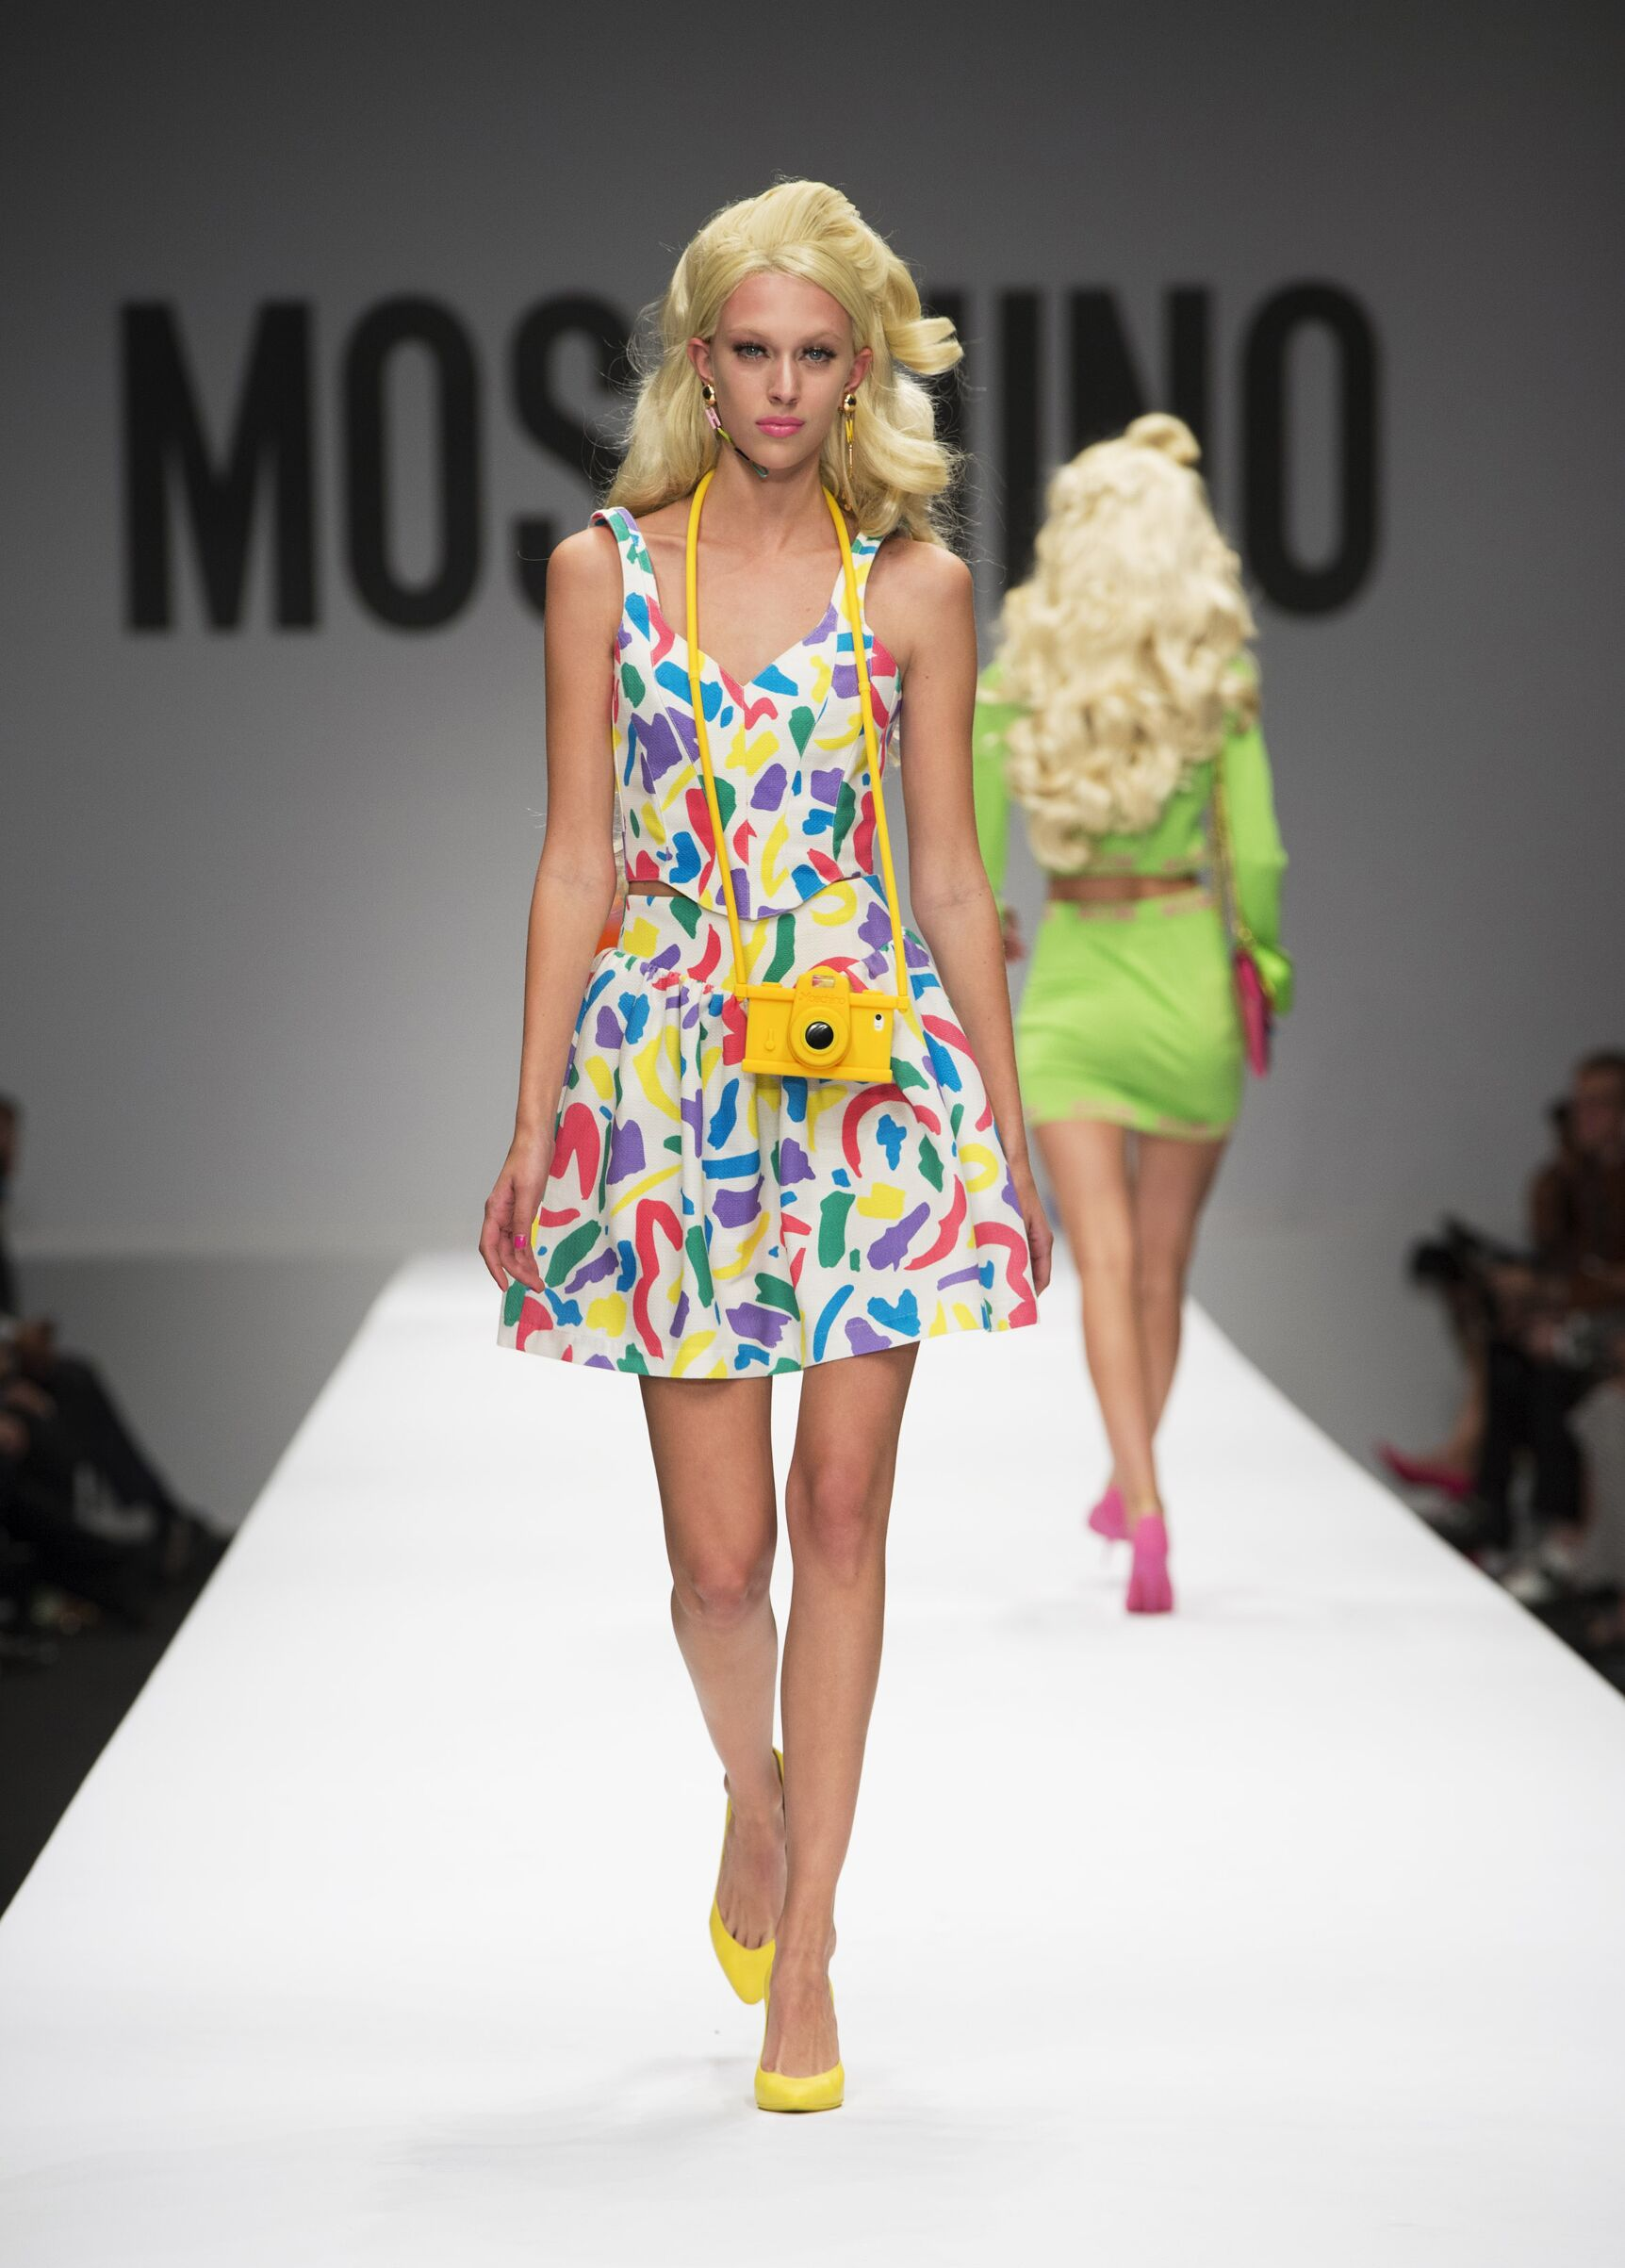 Fashion Model Moschino Catwalk